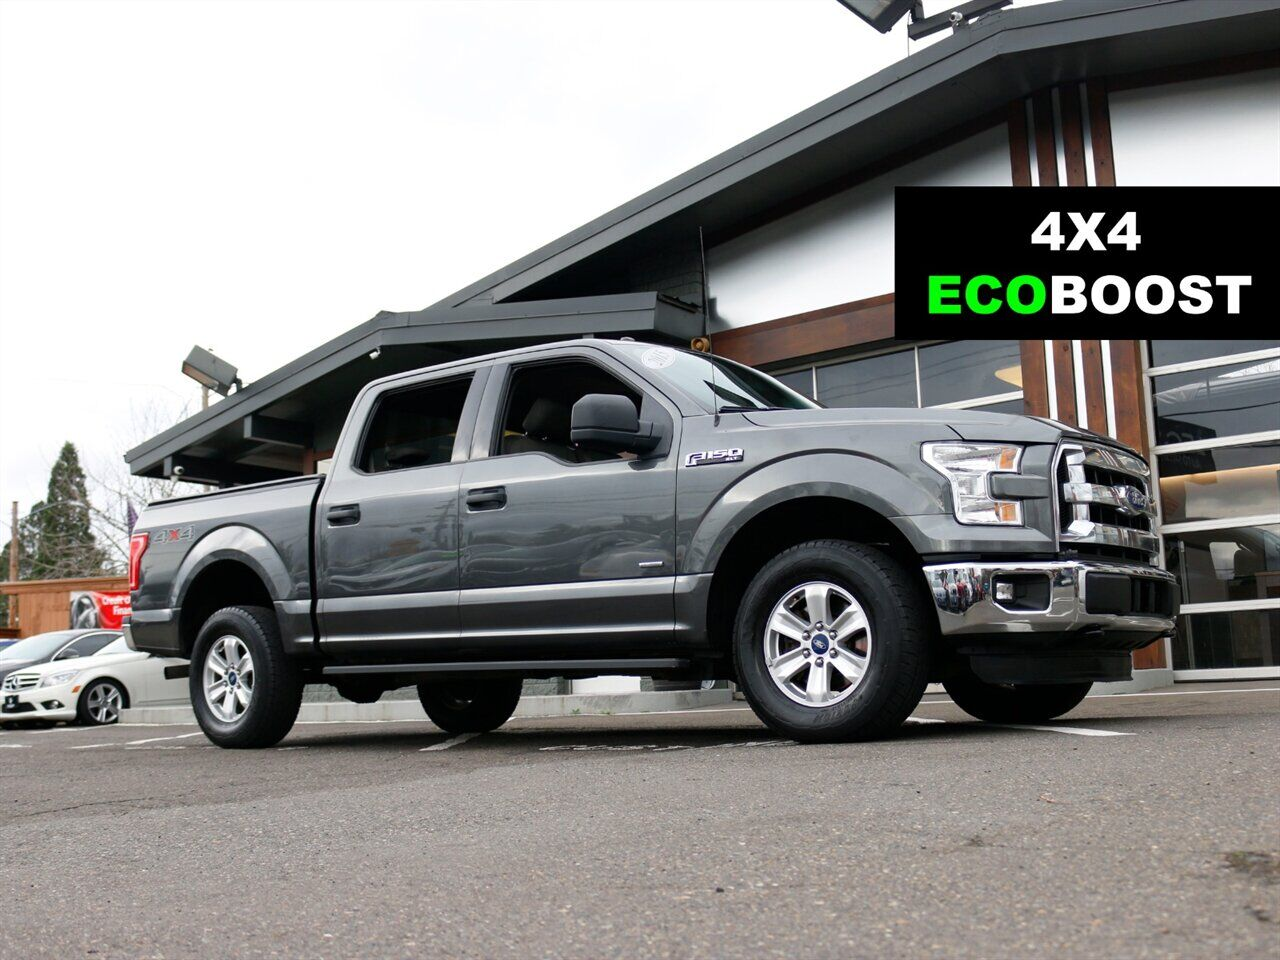 2015 Ford F-150 XLT ECOBOOST 4X4 SUPER CLEAN